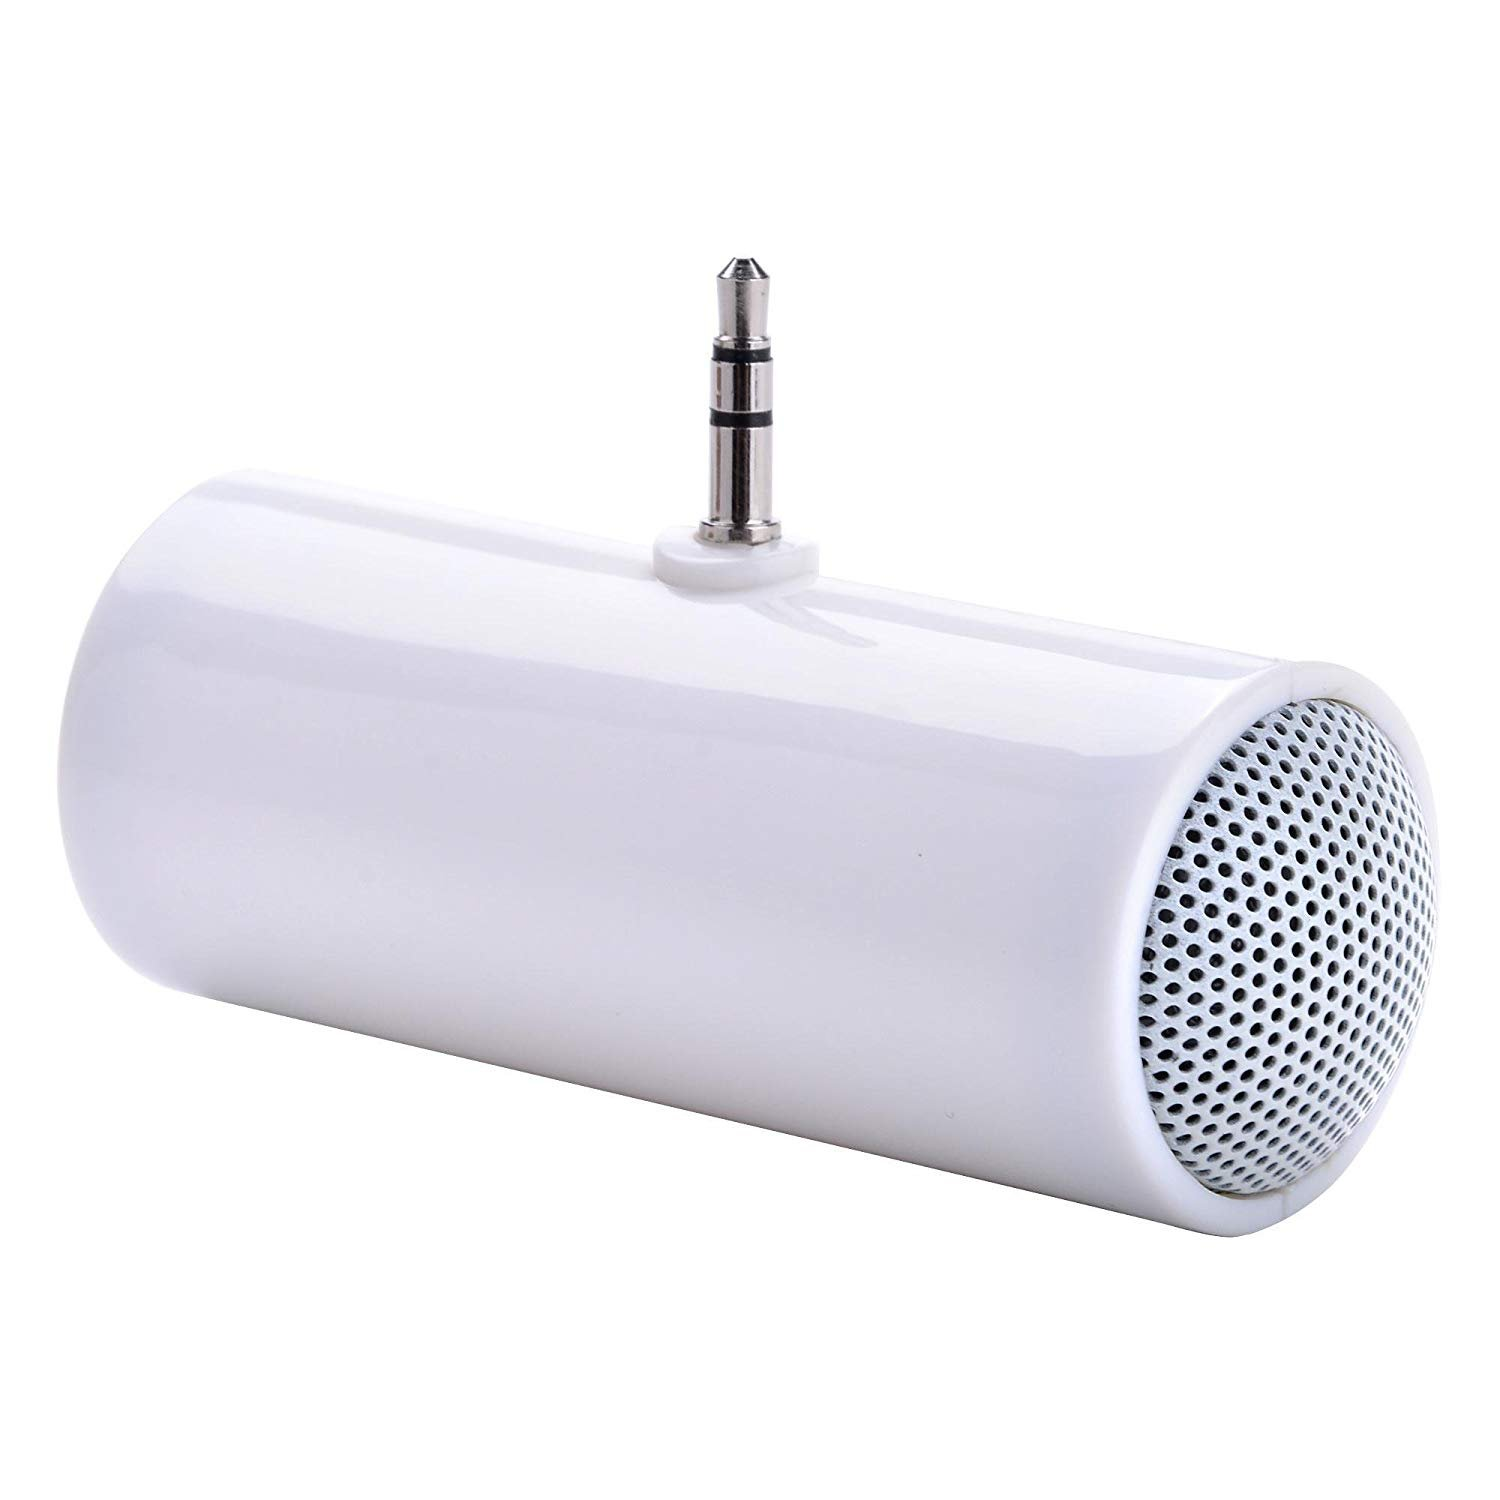 3.5mm Portable Speaker Stereo Mini Speaker Music MP3 Player Amplifier Loudspeaker for Mobile Phone&Tablet PCS Portable Line-in Speakers